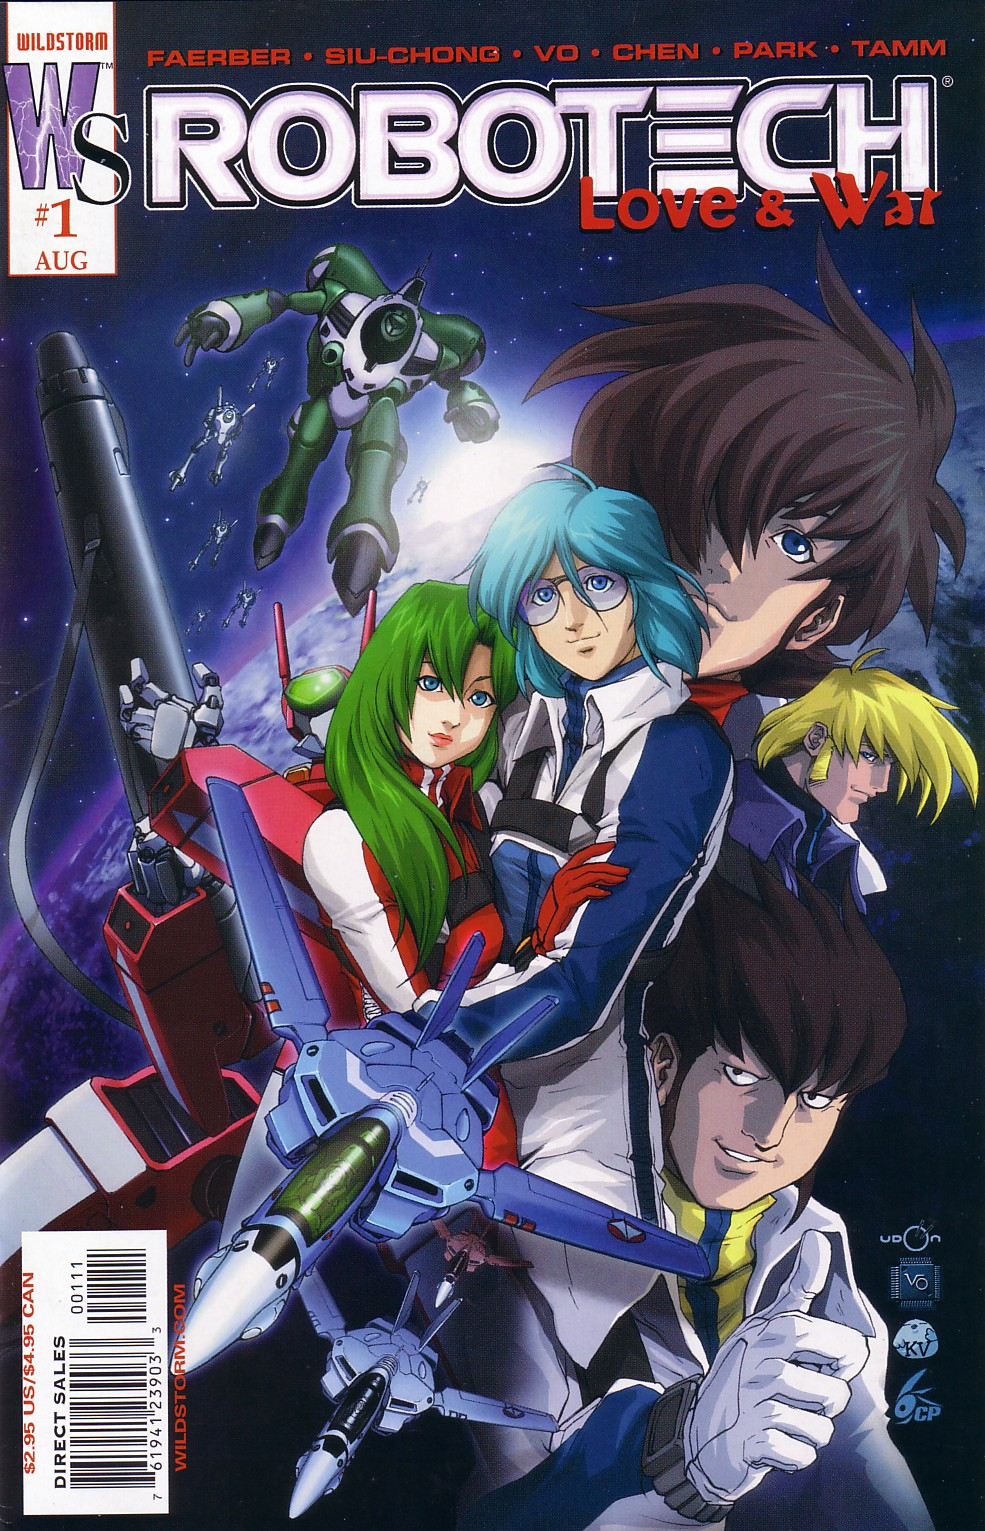 Read online Robotech: Love and War comic -  Issue #1 - 2